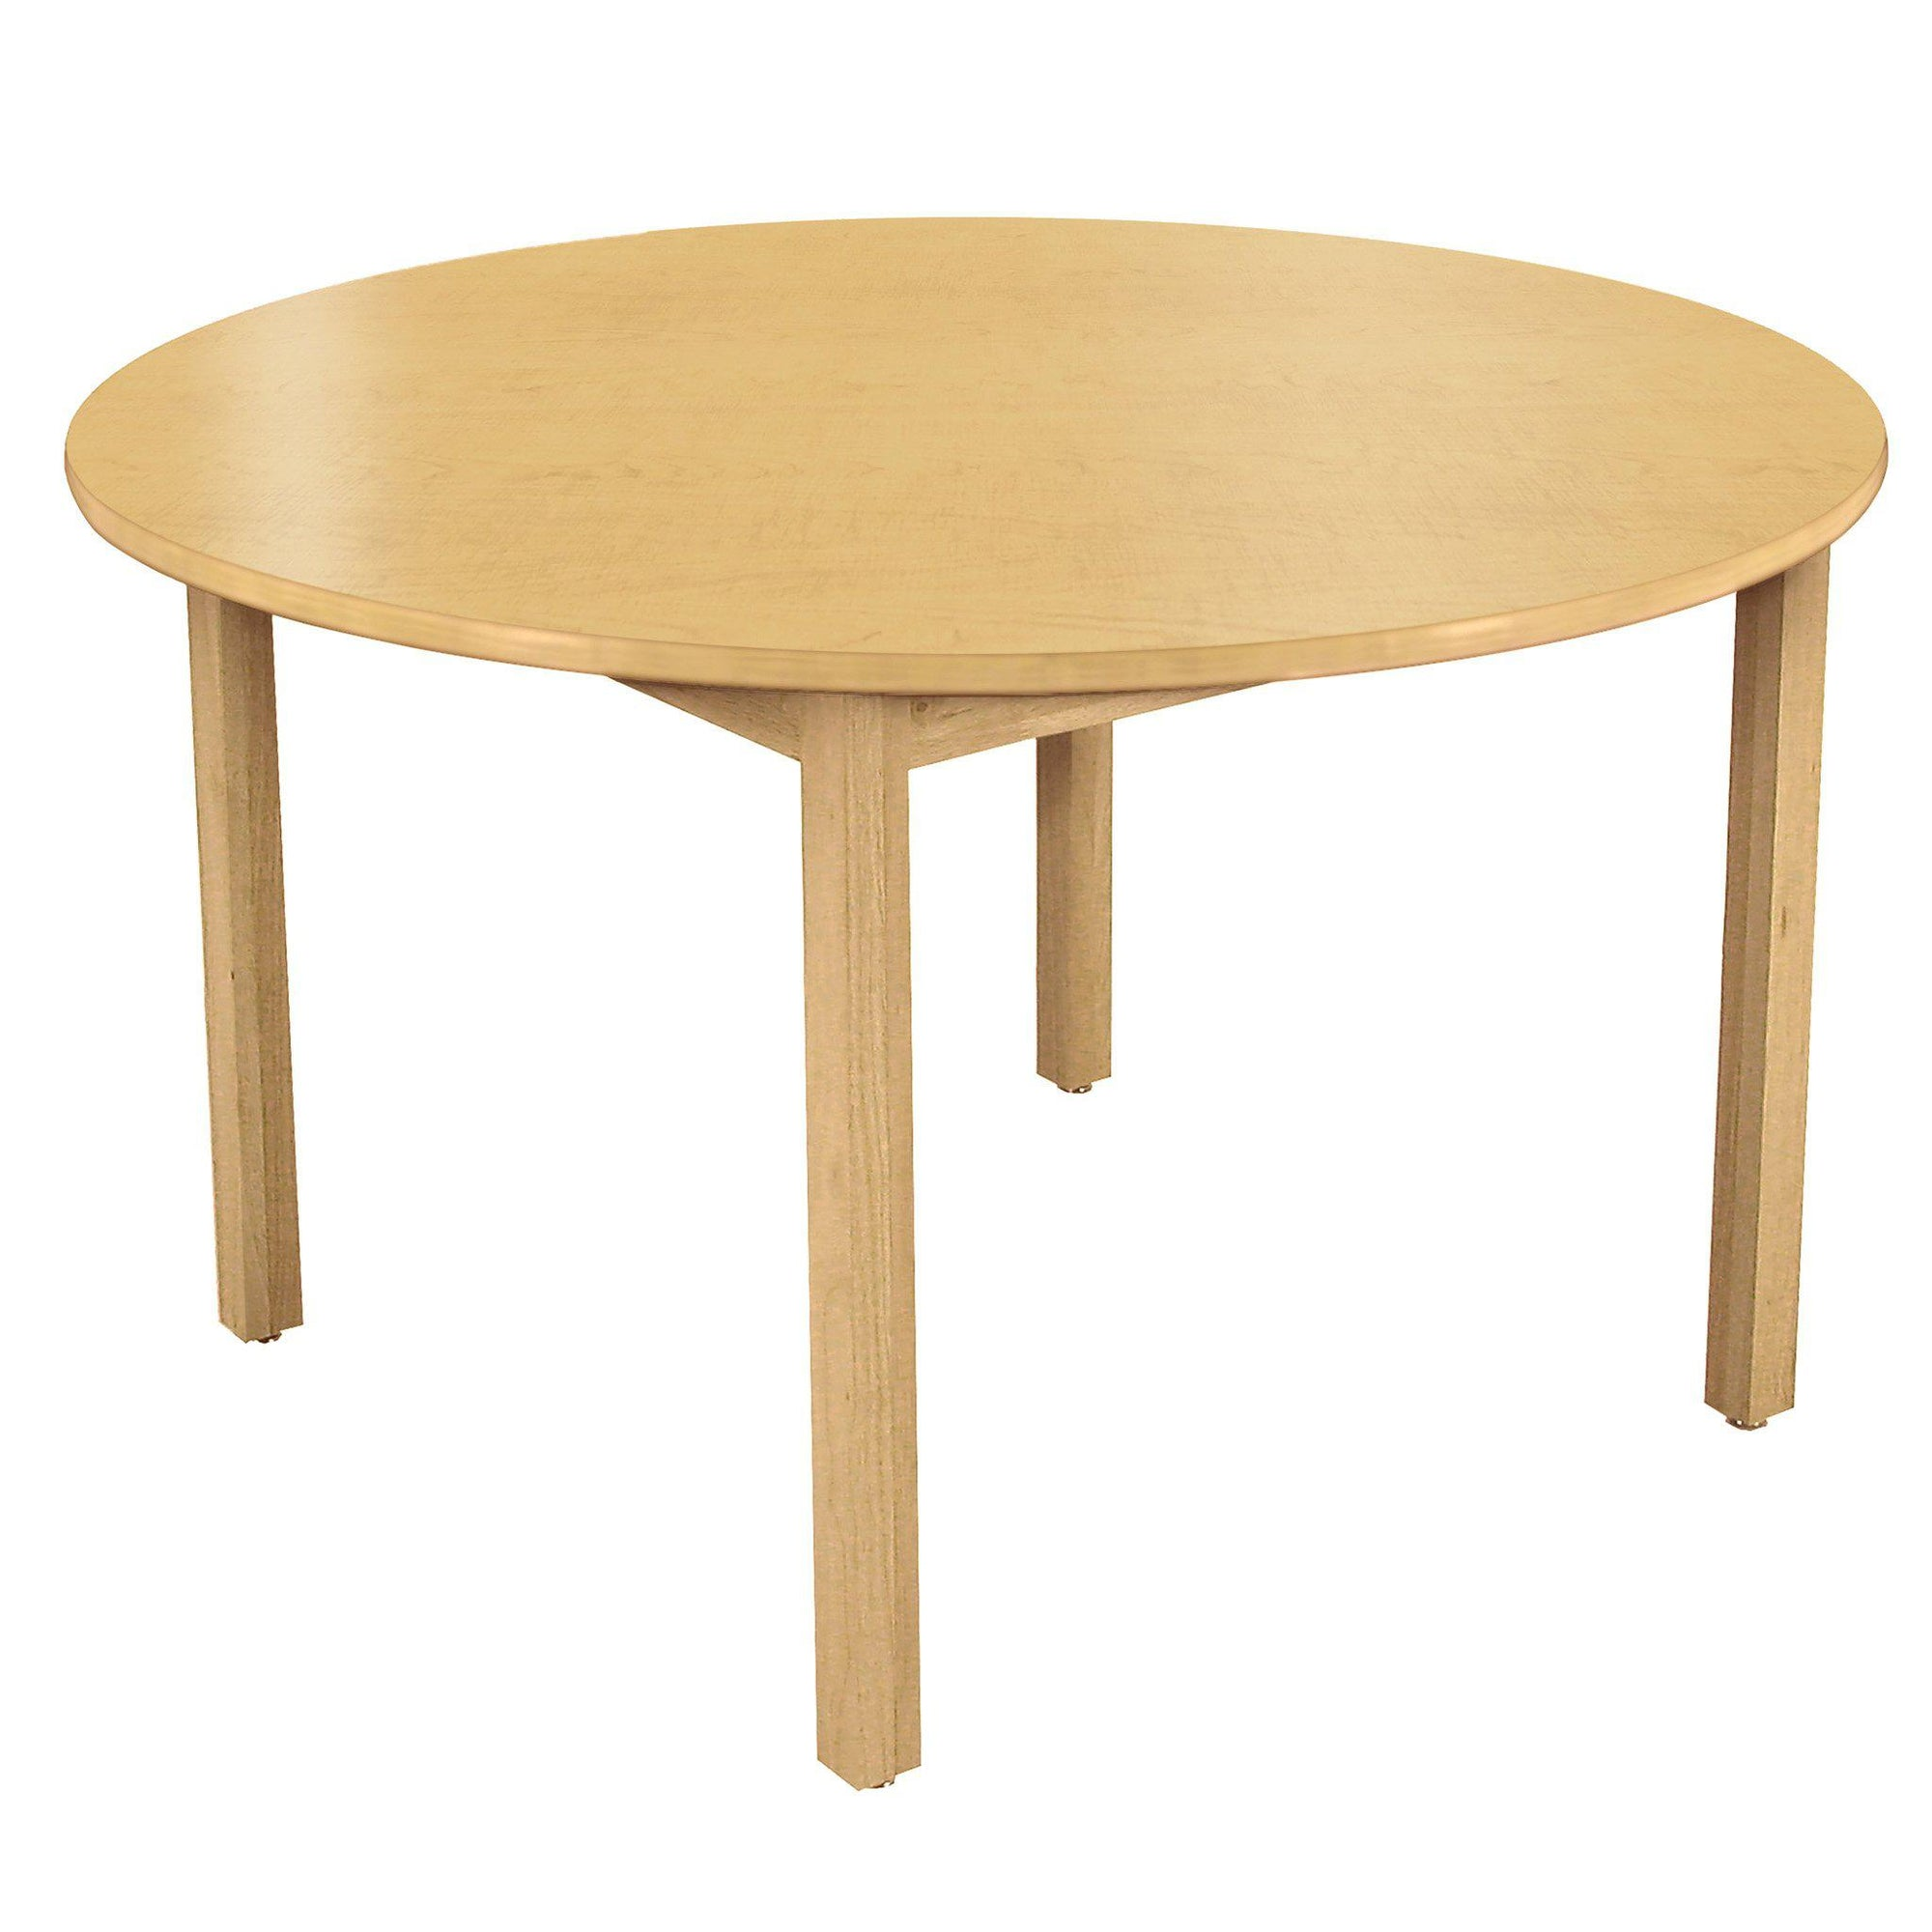 "LB Series Round Wood Library Table with High-Pressure Laminate Top, 36"" Round"